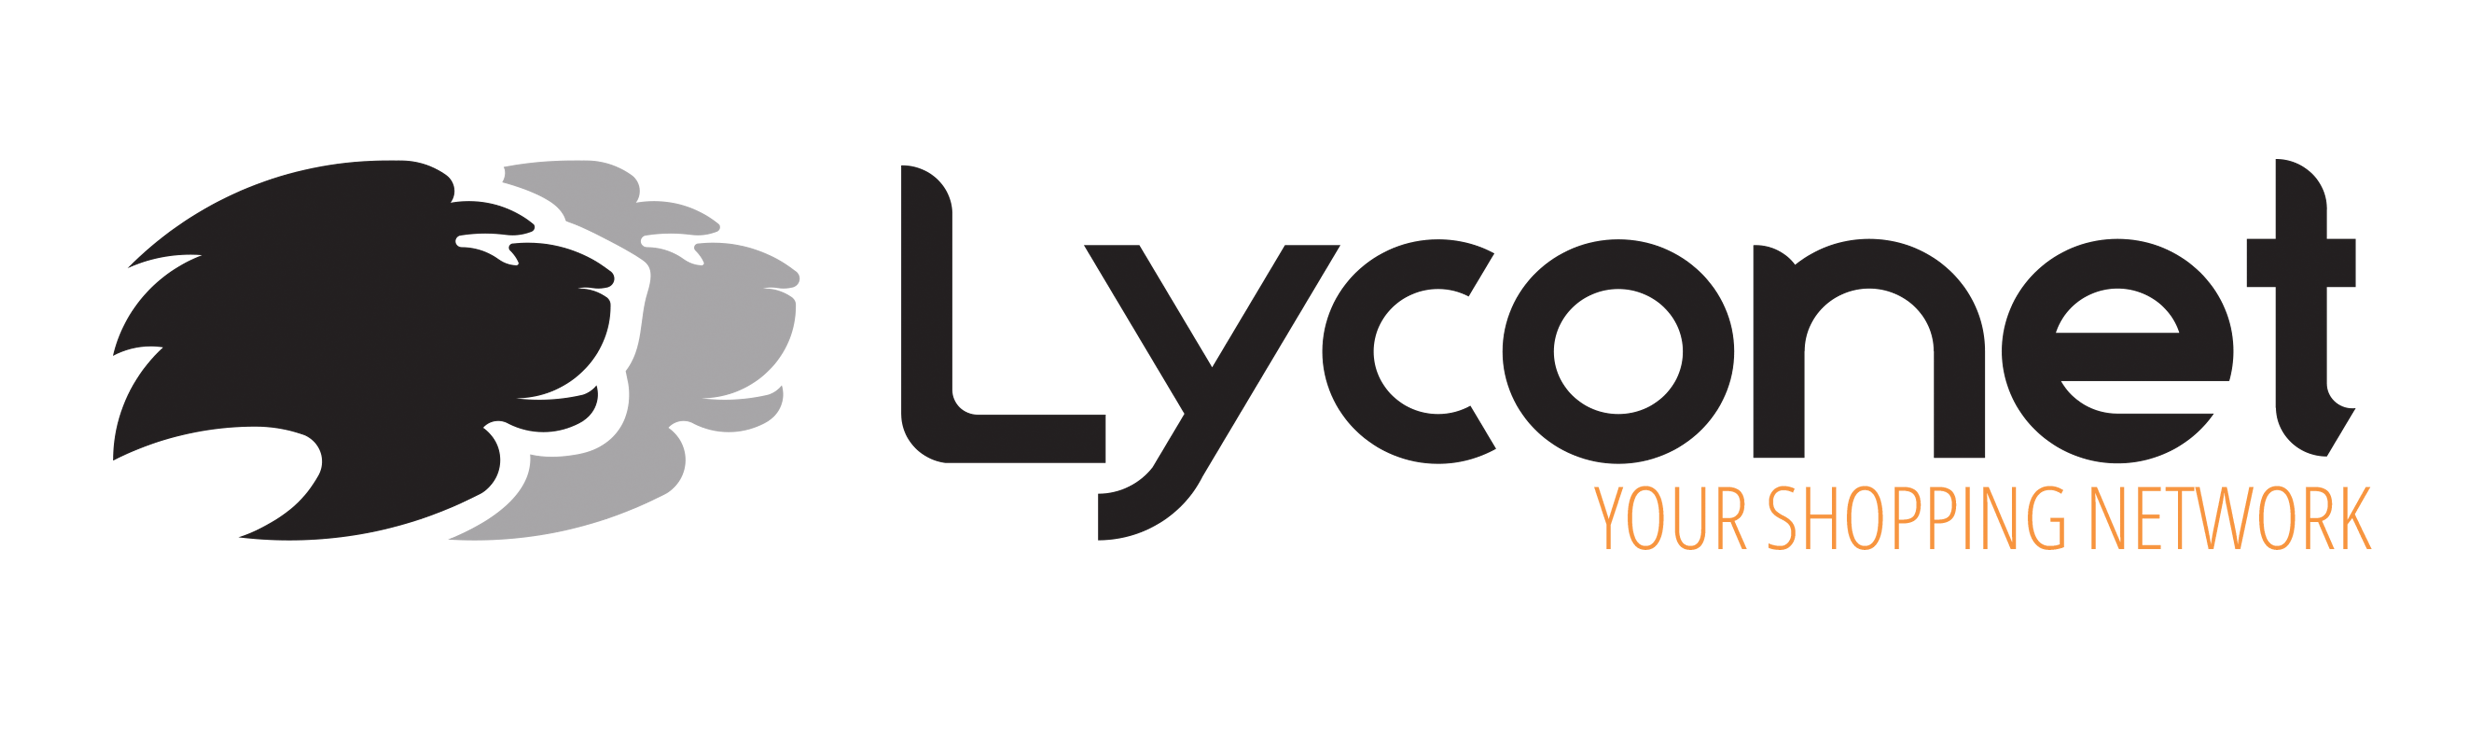 Lyconet-Logo.png